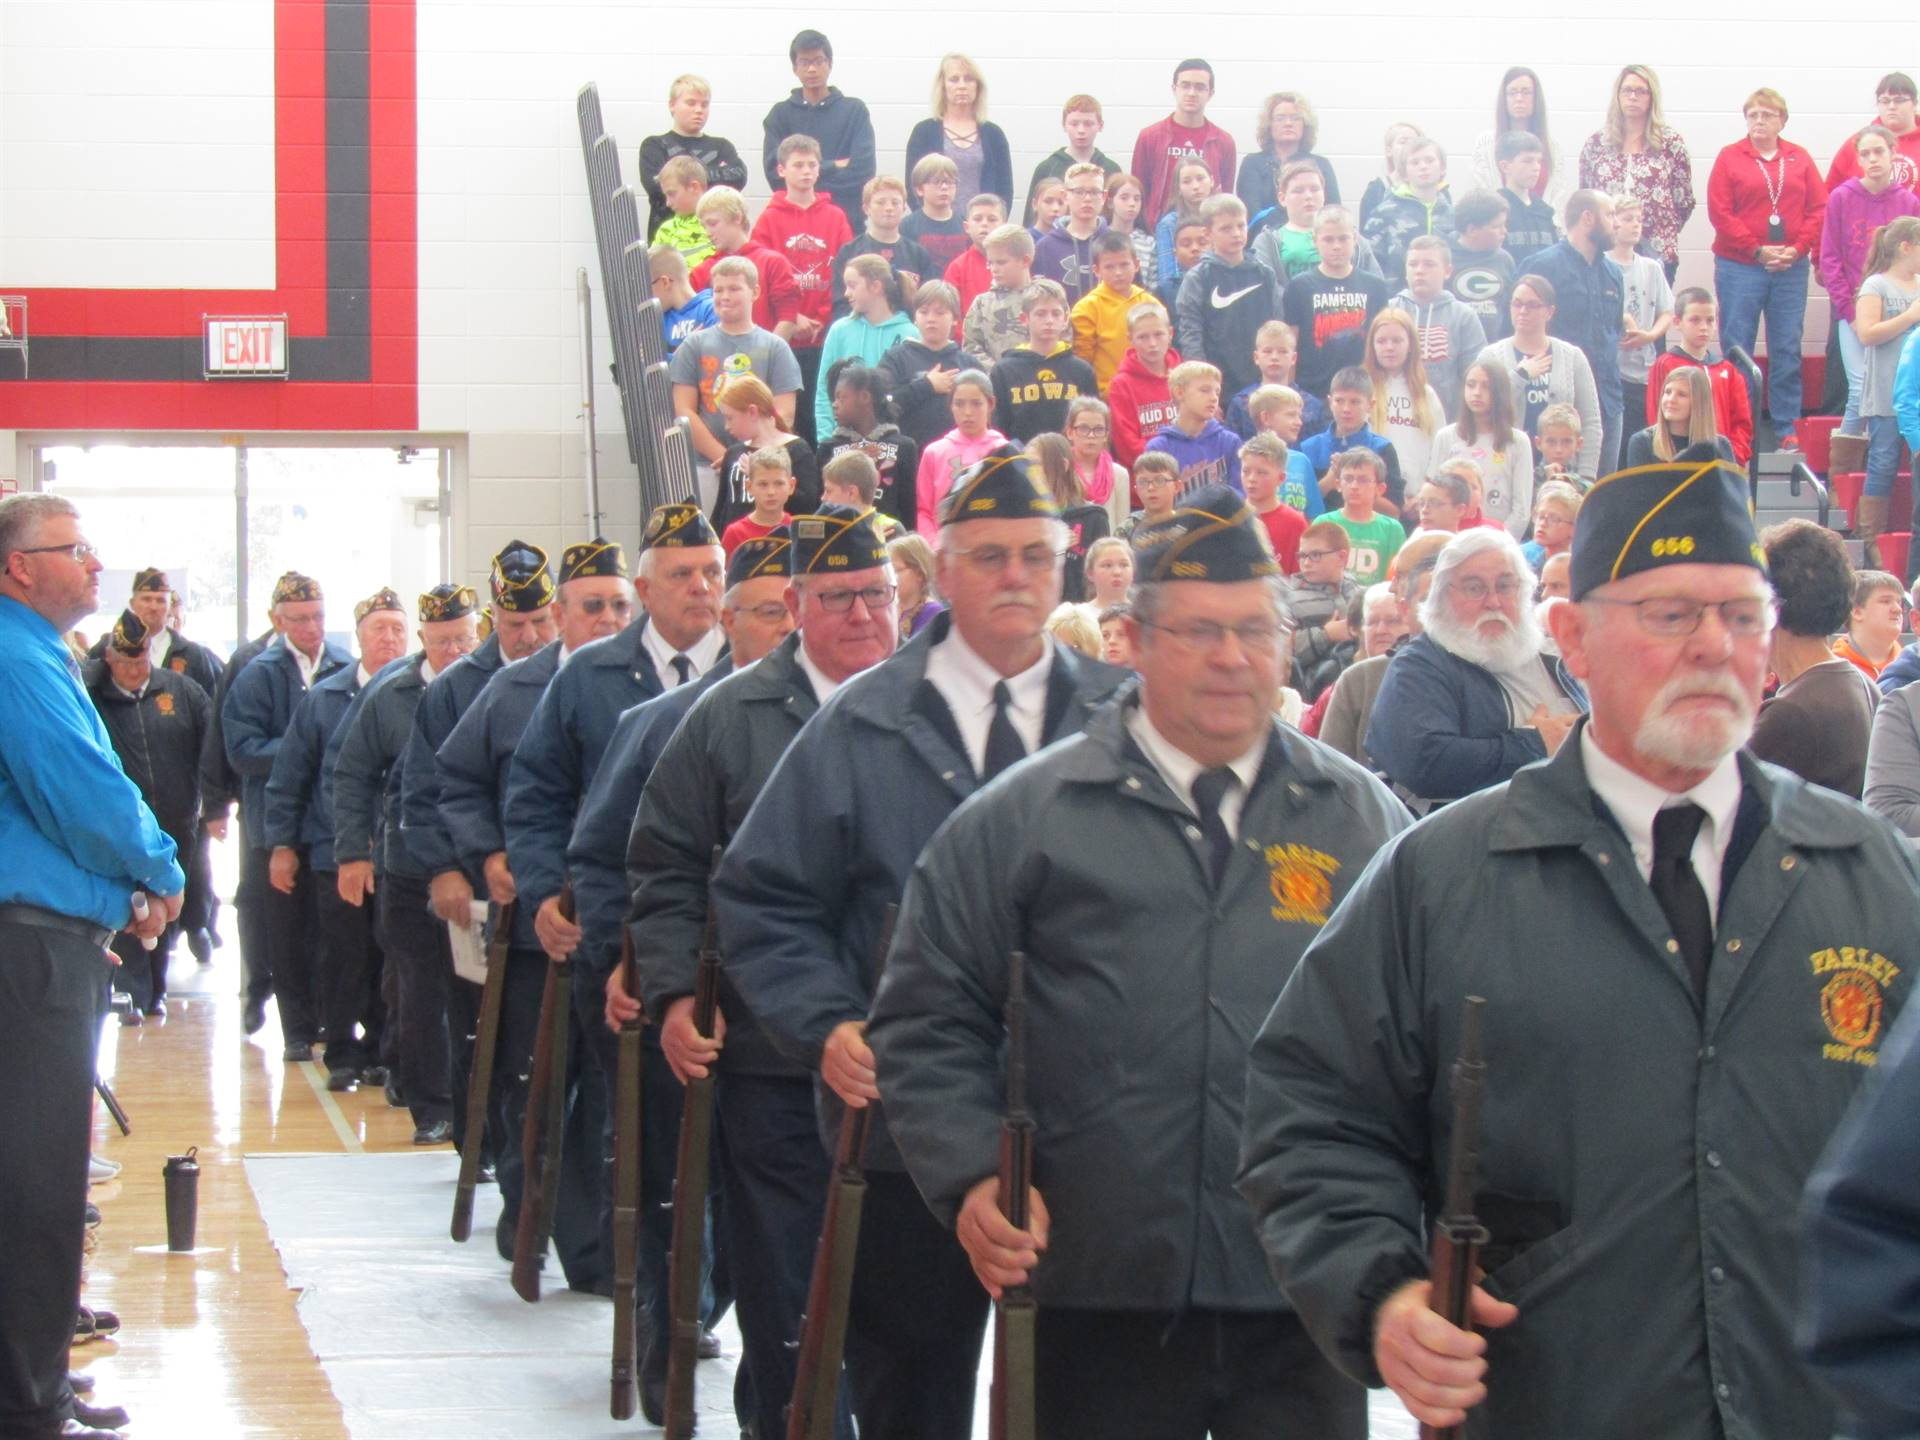 DMIS Veterans march into assembly